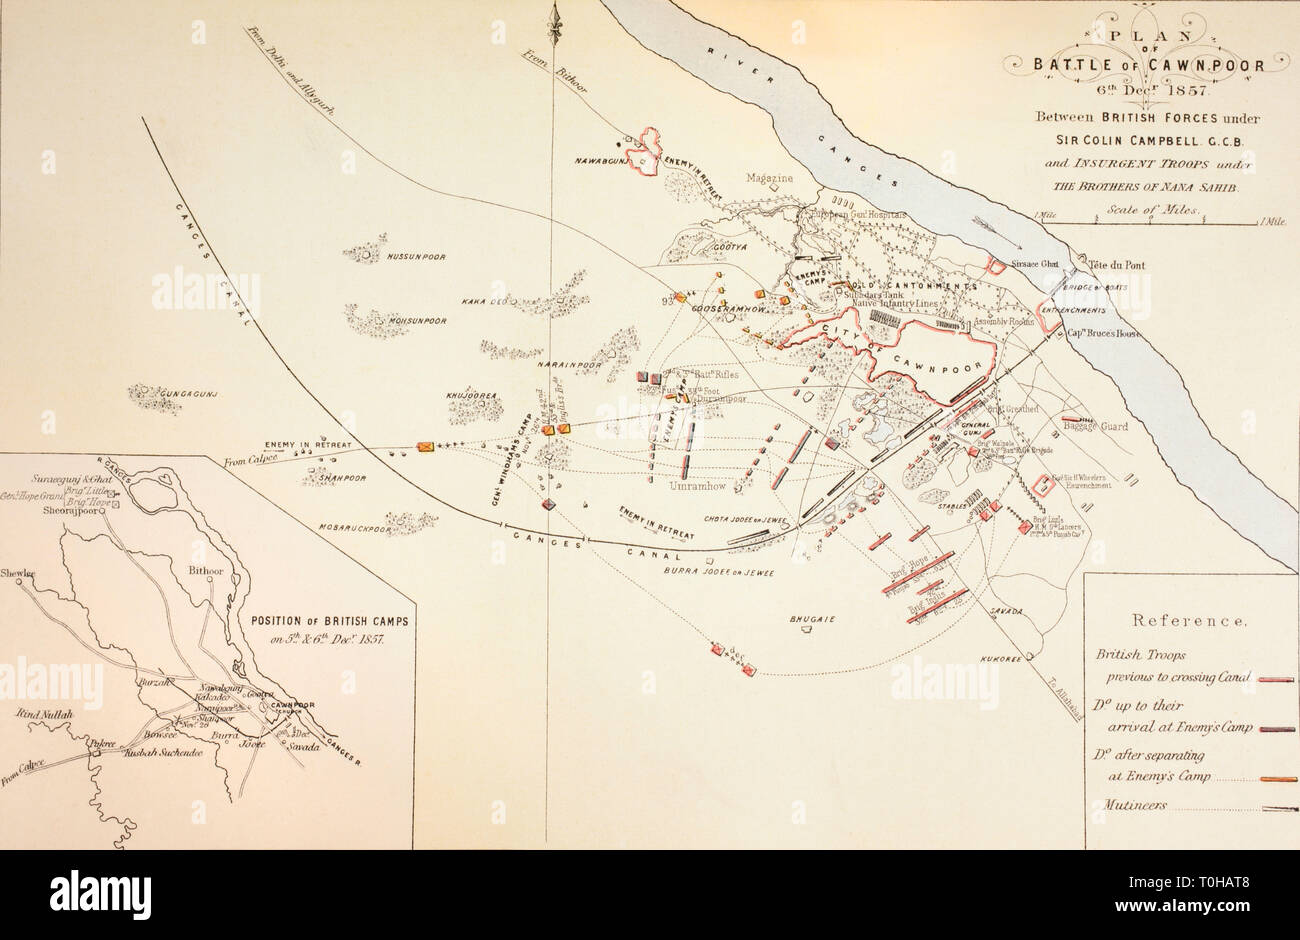 Plan of the Battle of Cawnpore, 1857 Stock Photo